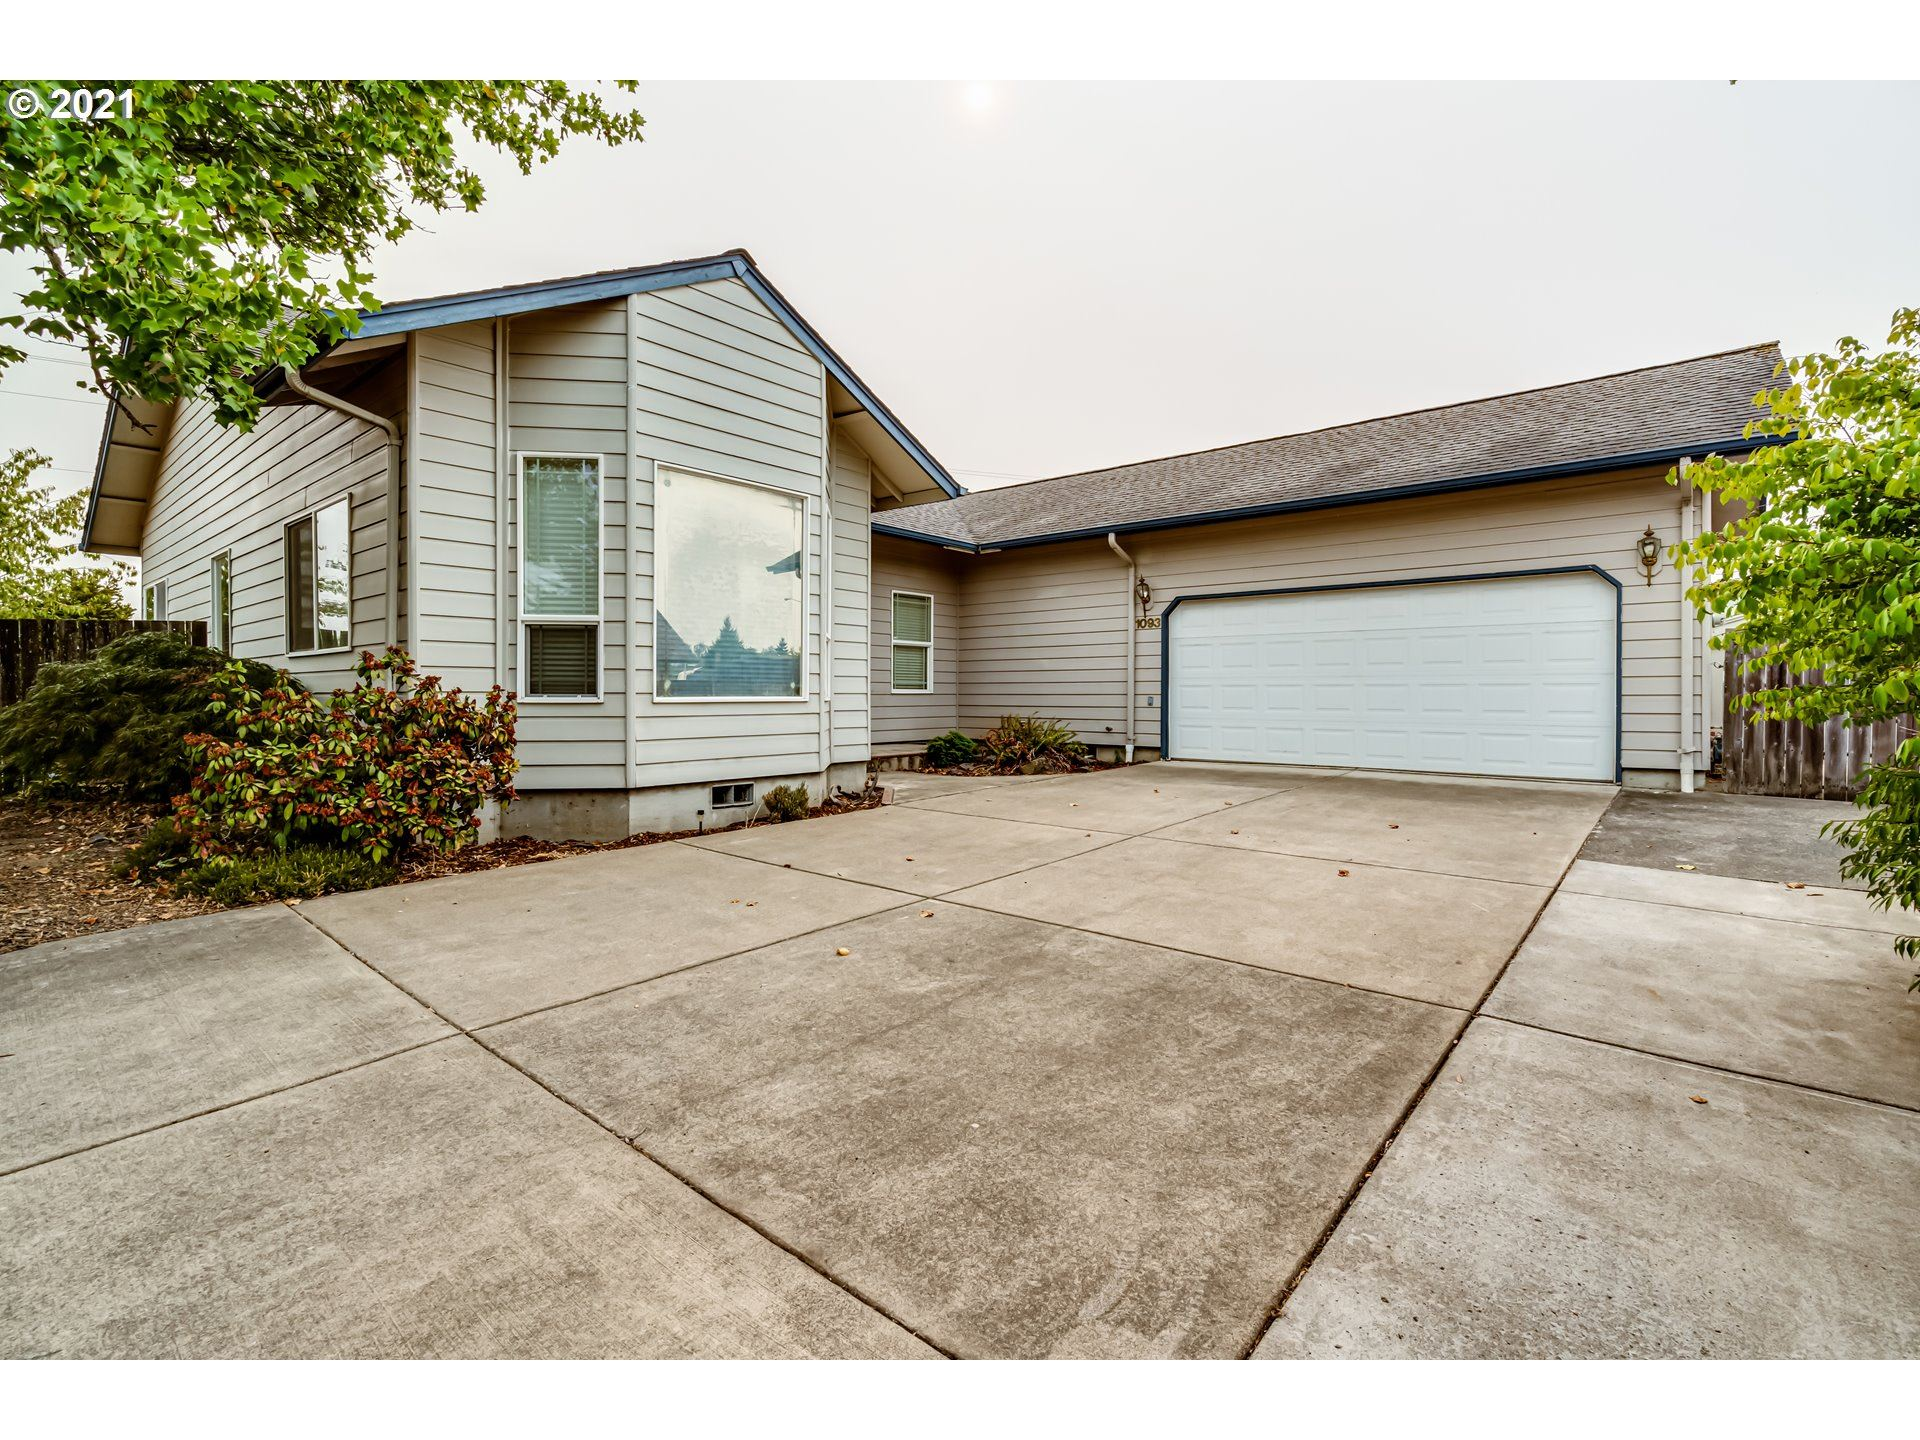 Photo for 1093 CEDAR CT, Creswell, OR 97426 (MLS # 21032794)